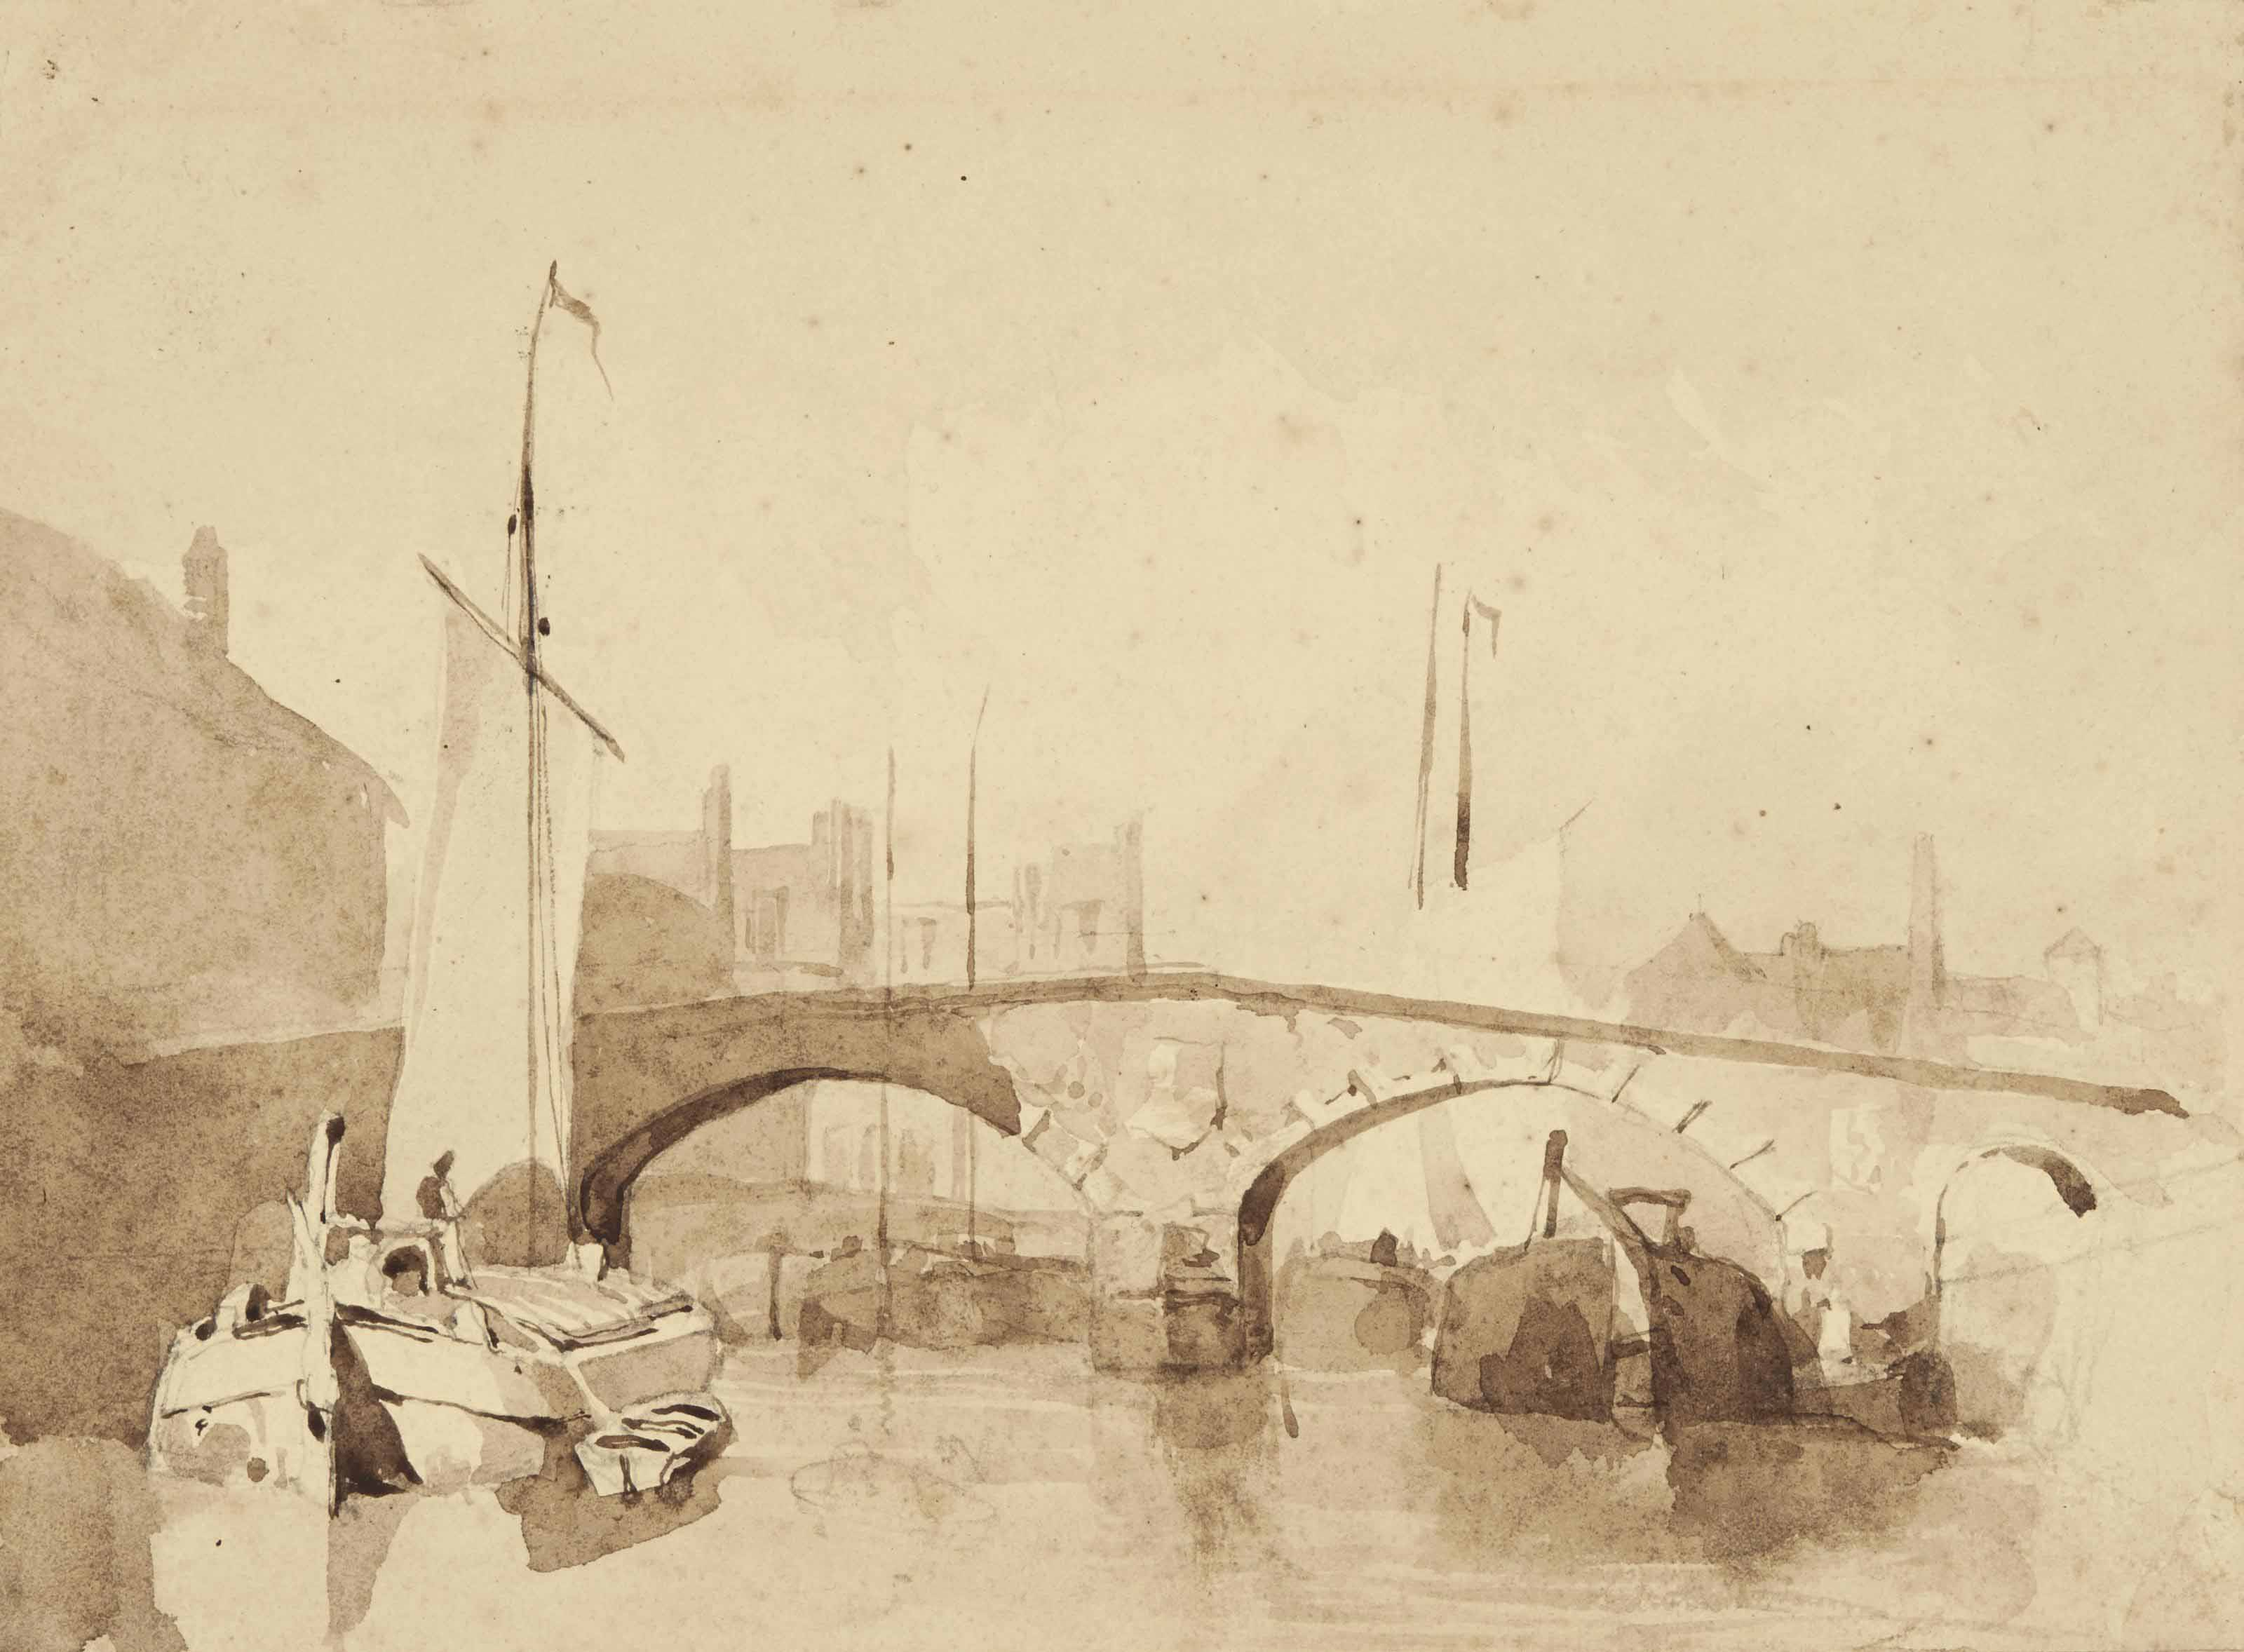 A sail barge and other shipping beneath a bridge, Northern France